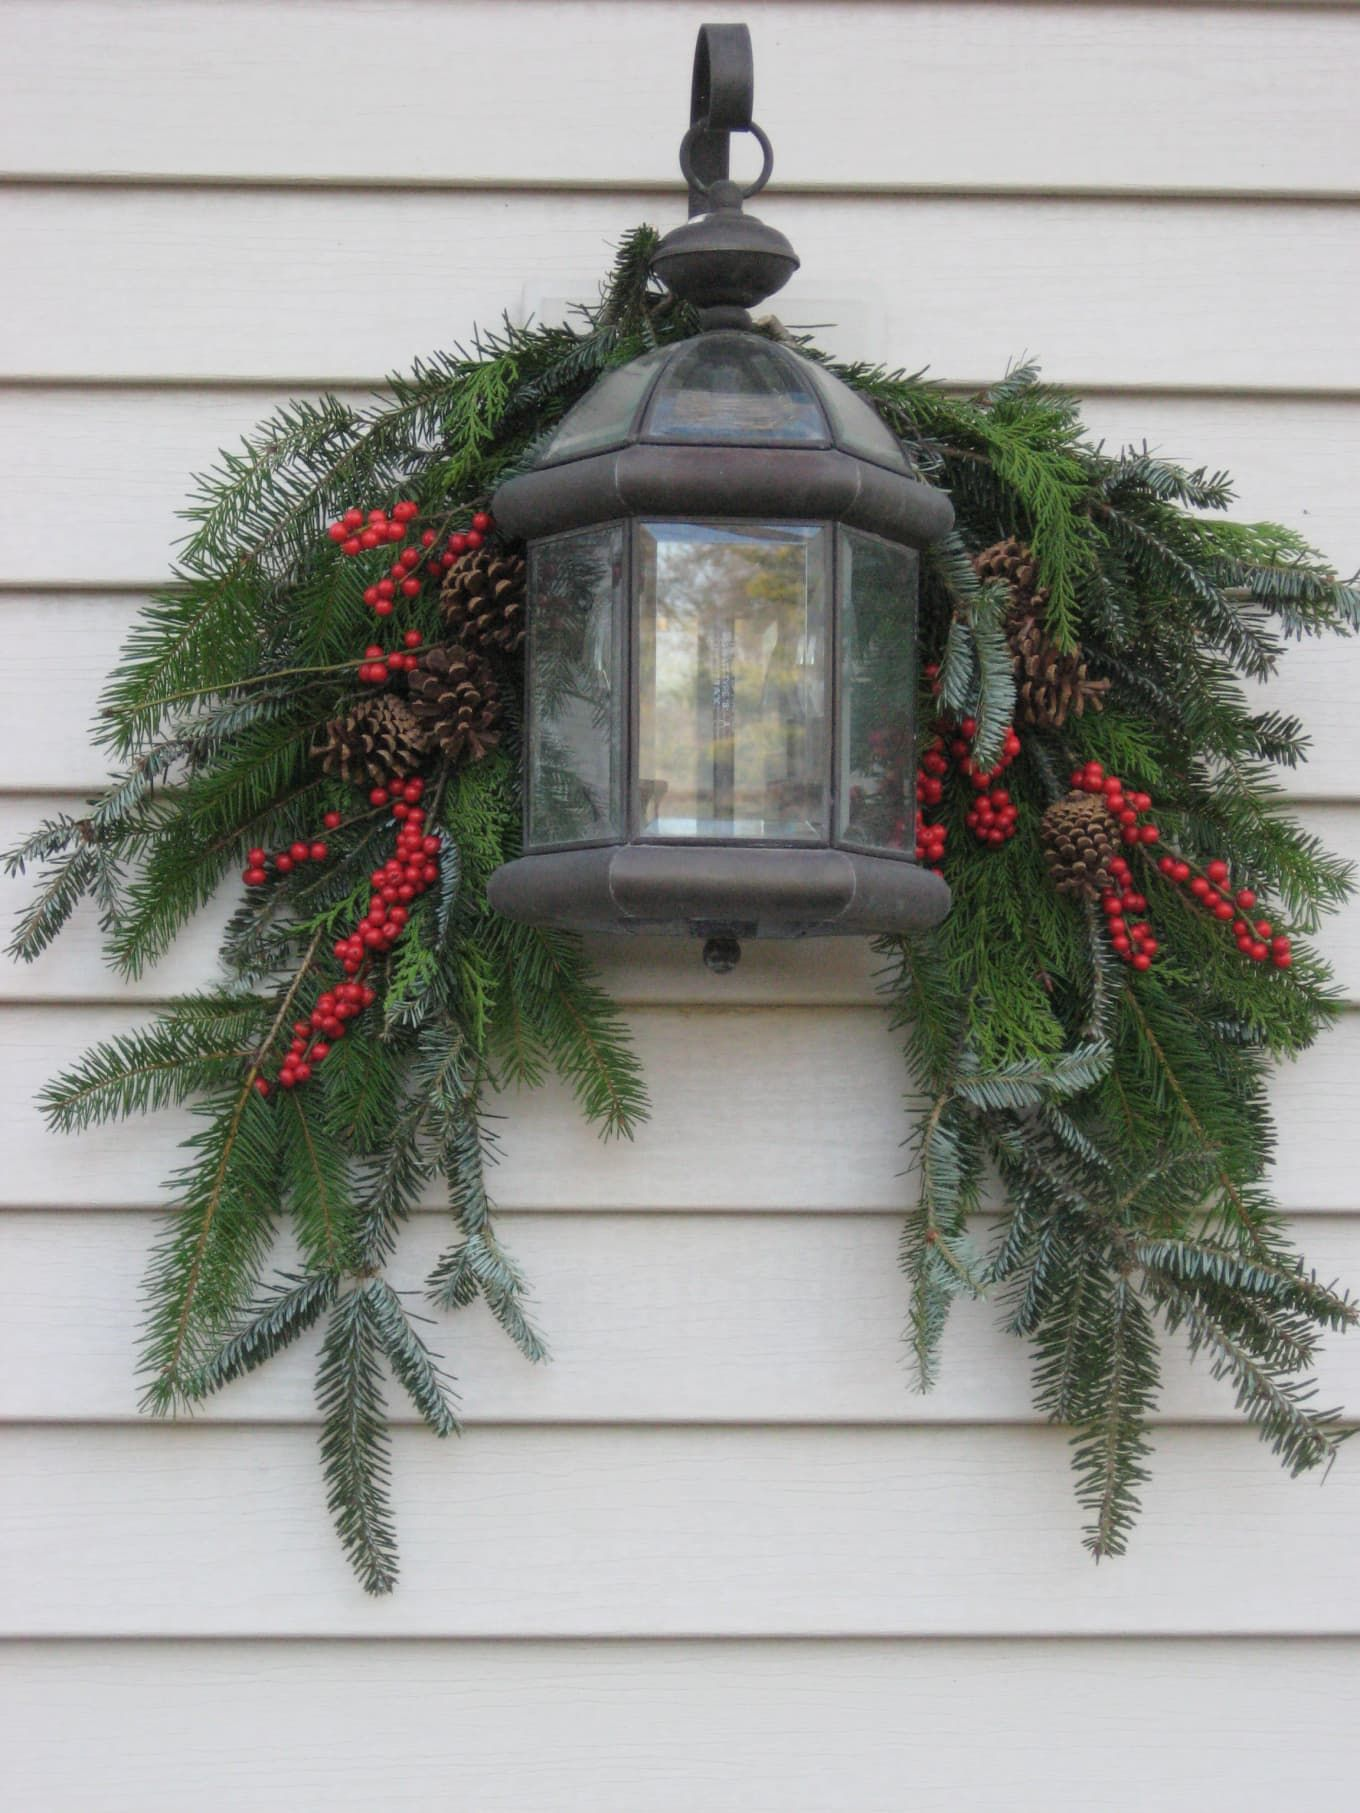 Beautiful Outdoor Decorating Ideas That Aren't the Least Bit Tacky